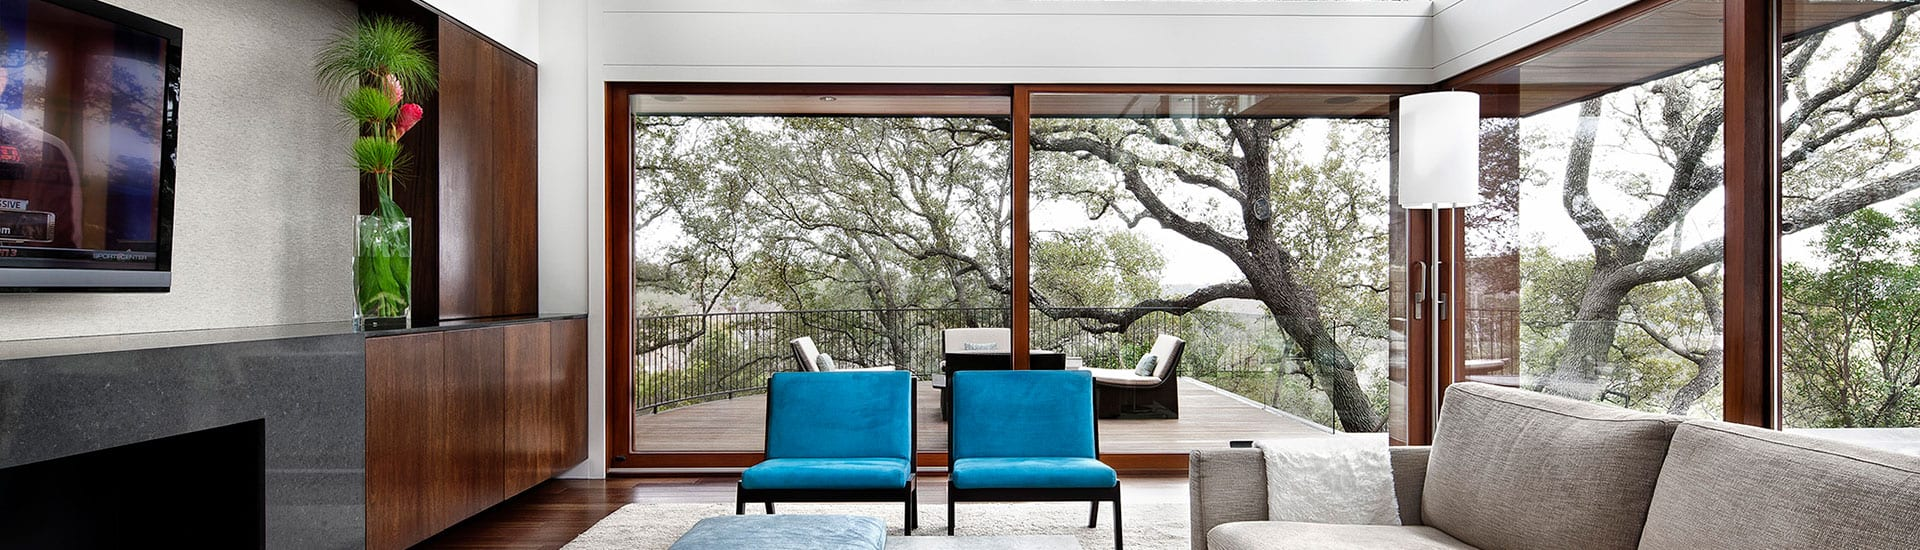 Wood lift and slide doors with view to trees outside